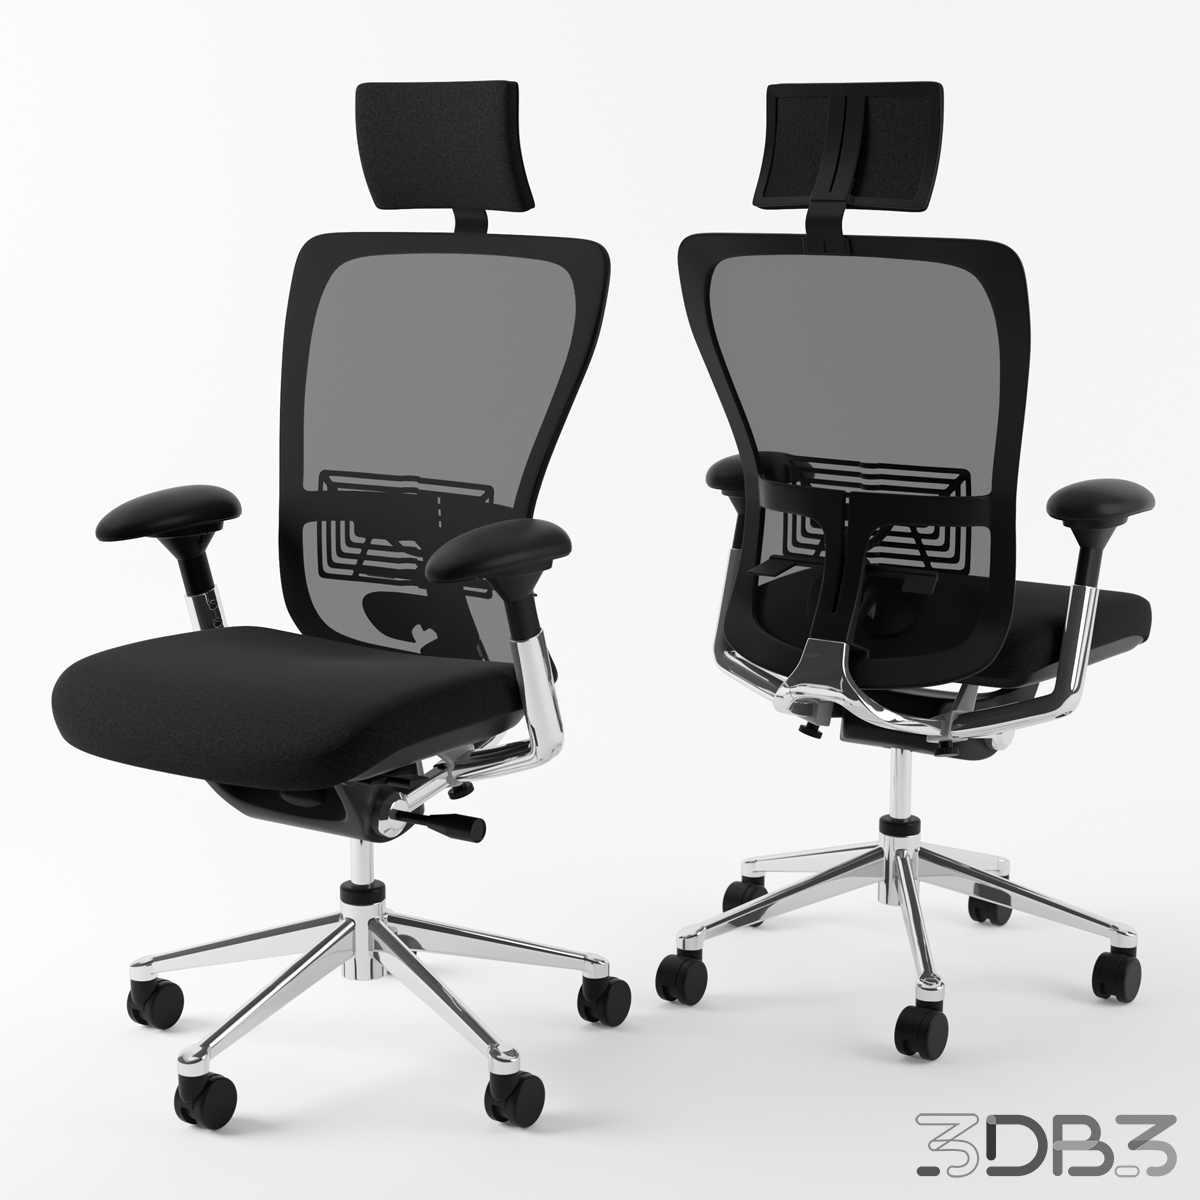 Haworth Zody Office Chair 3D Model